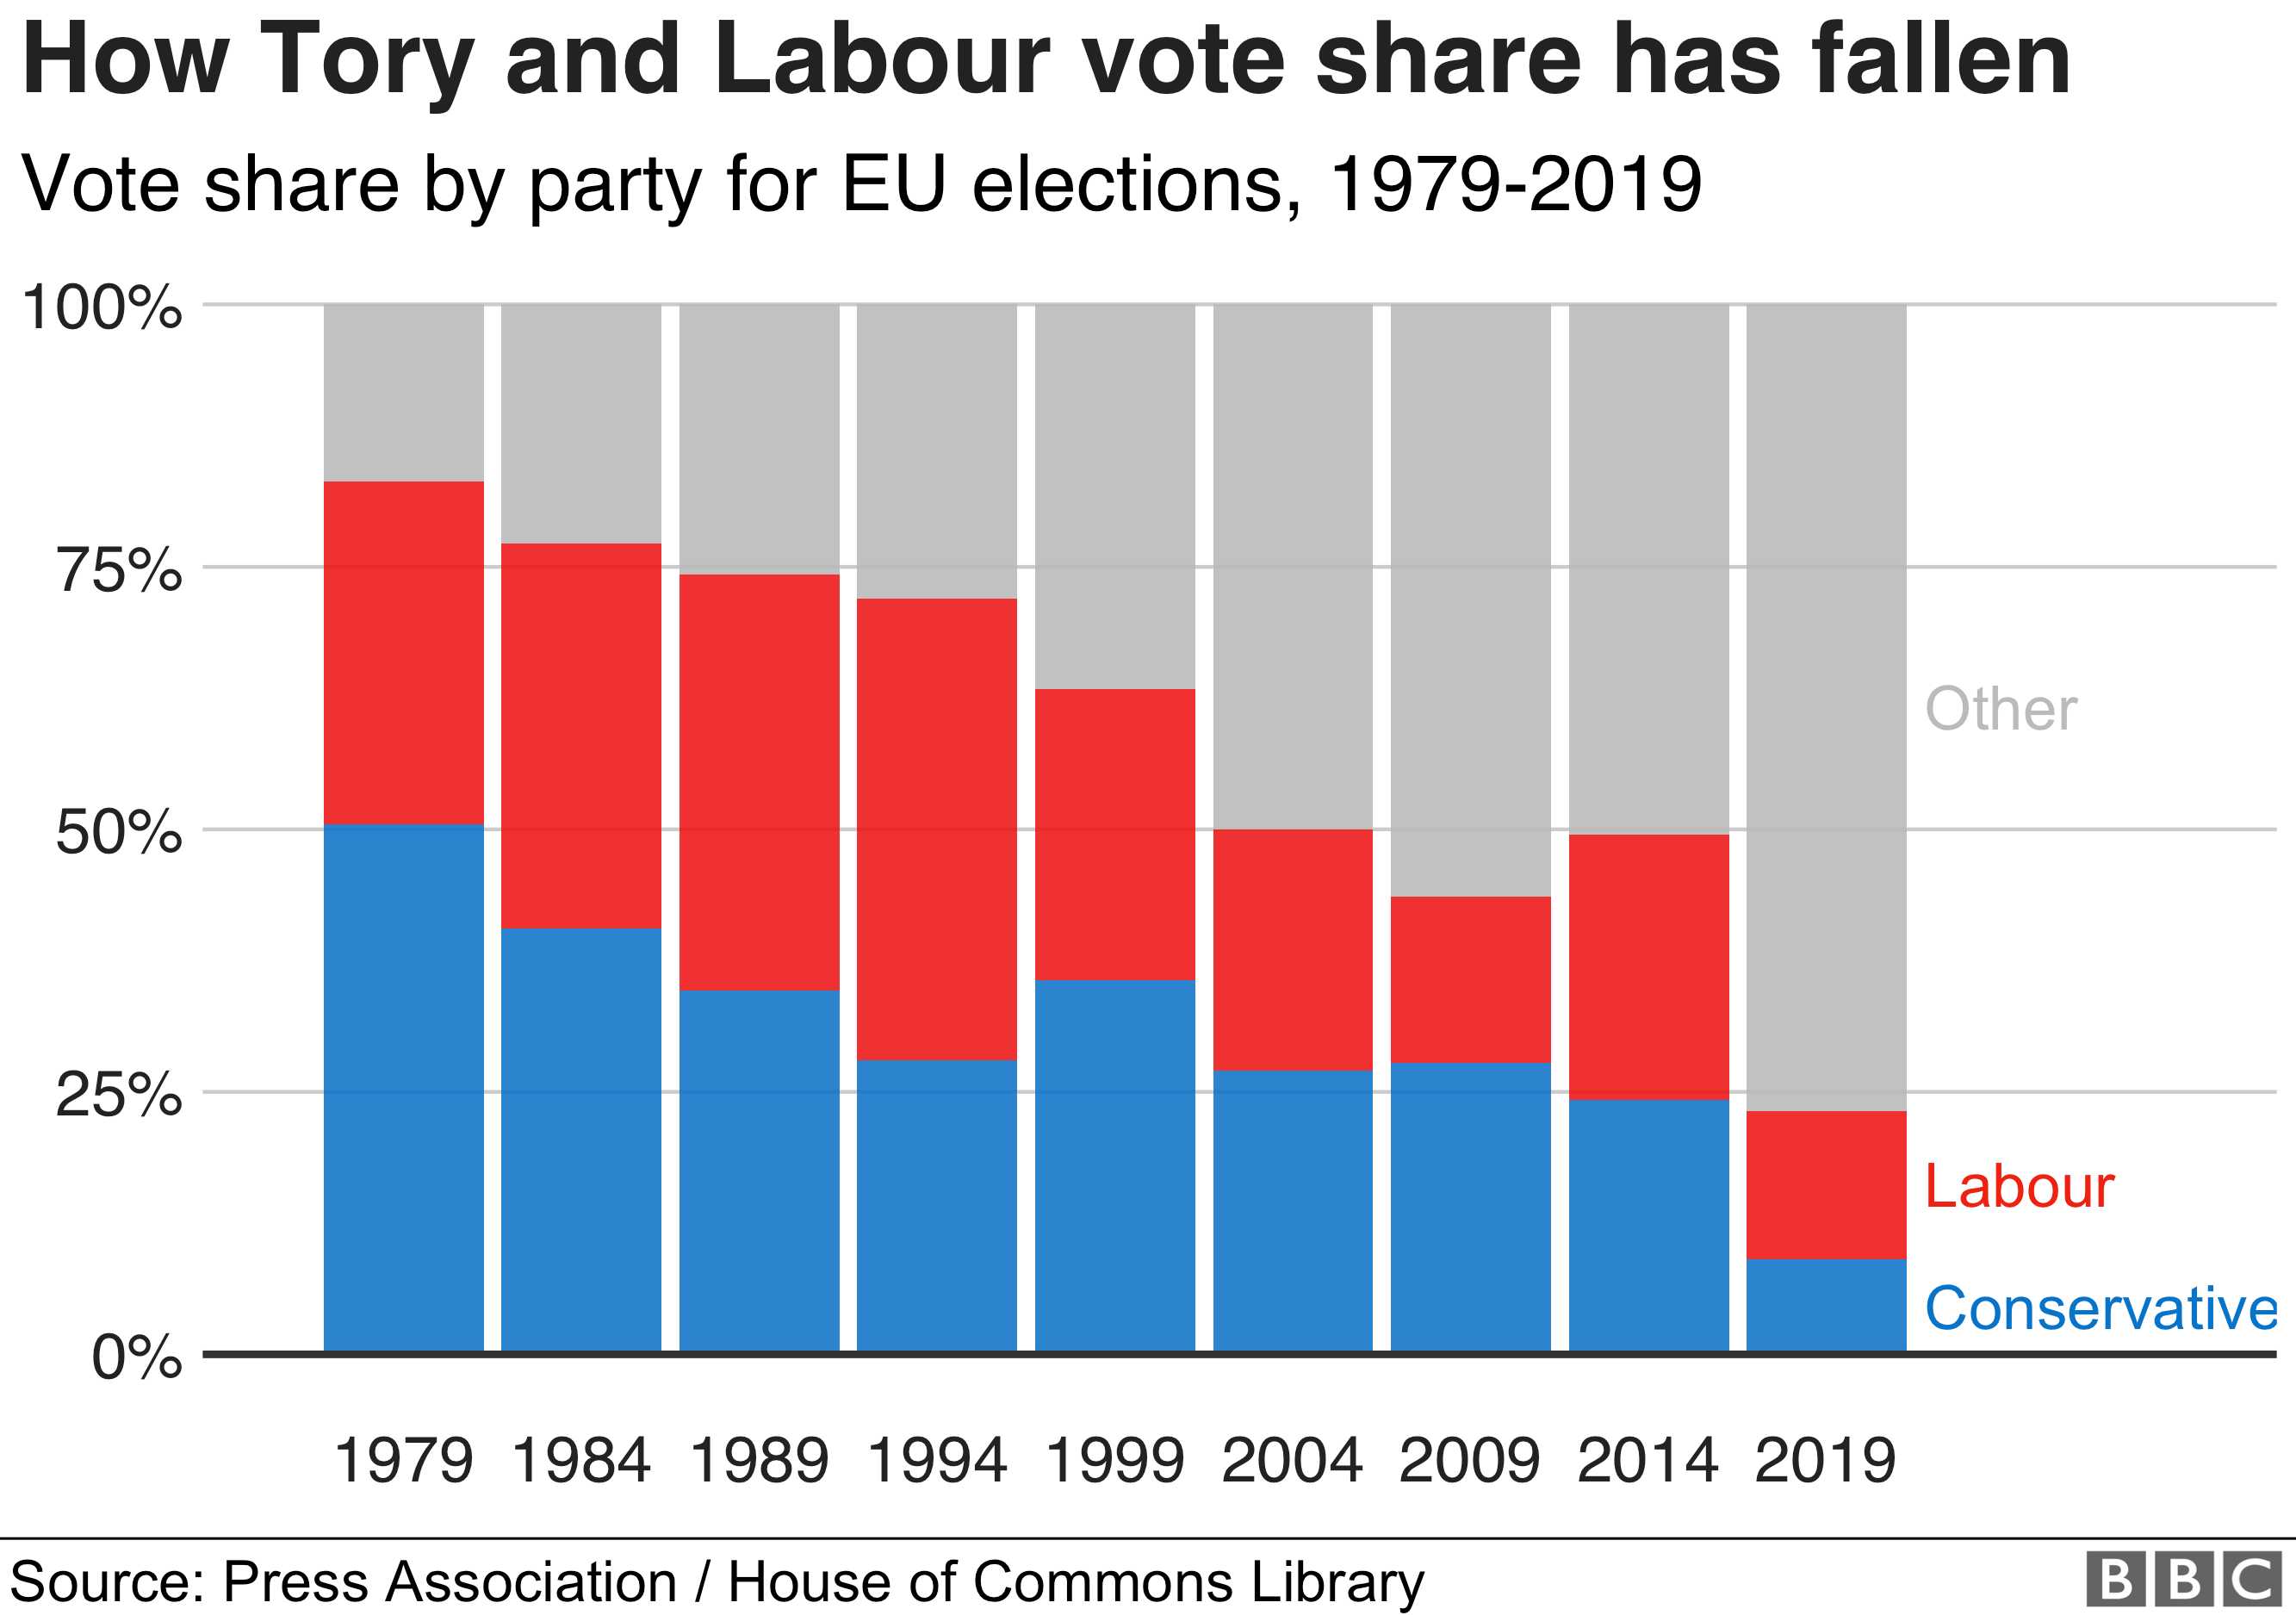 How Tory and Labour vote share has fallen to under 25% combined